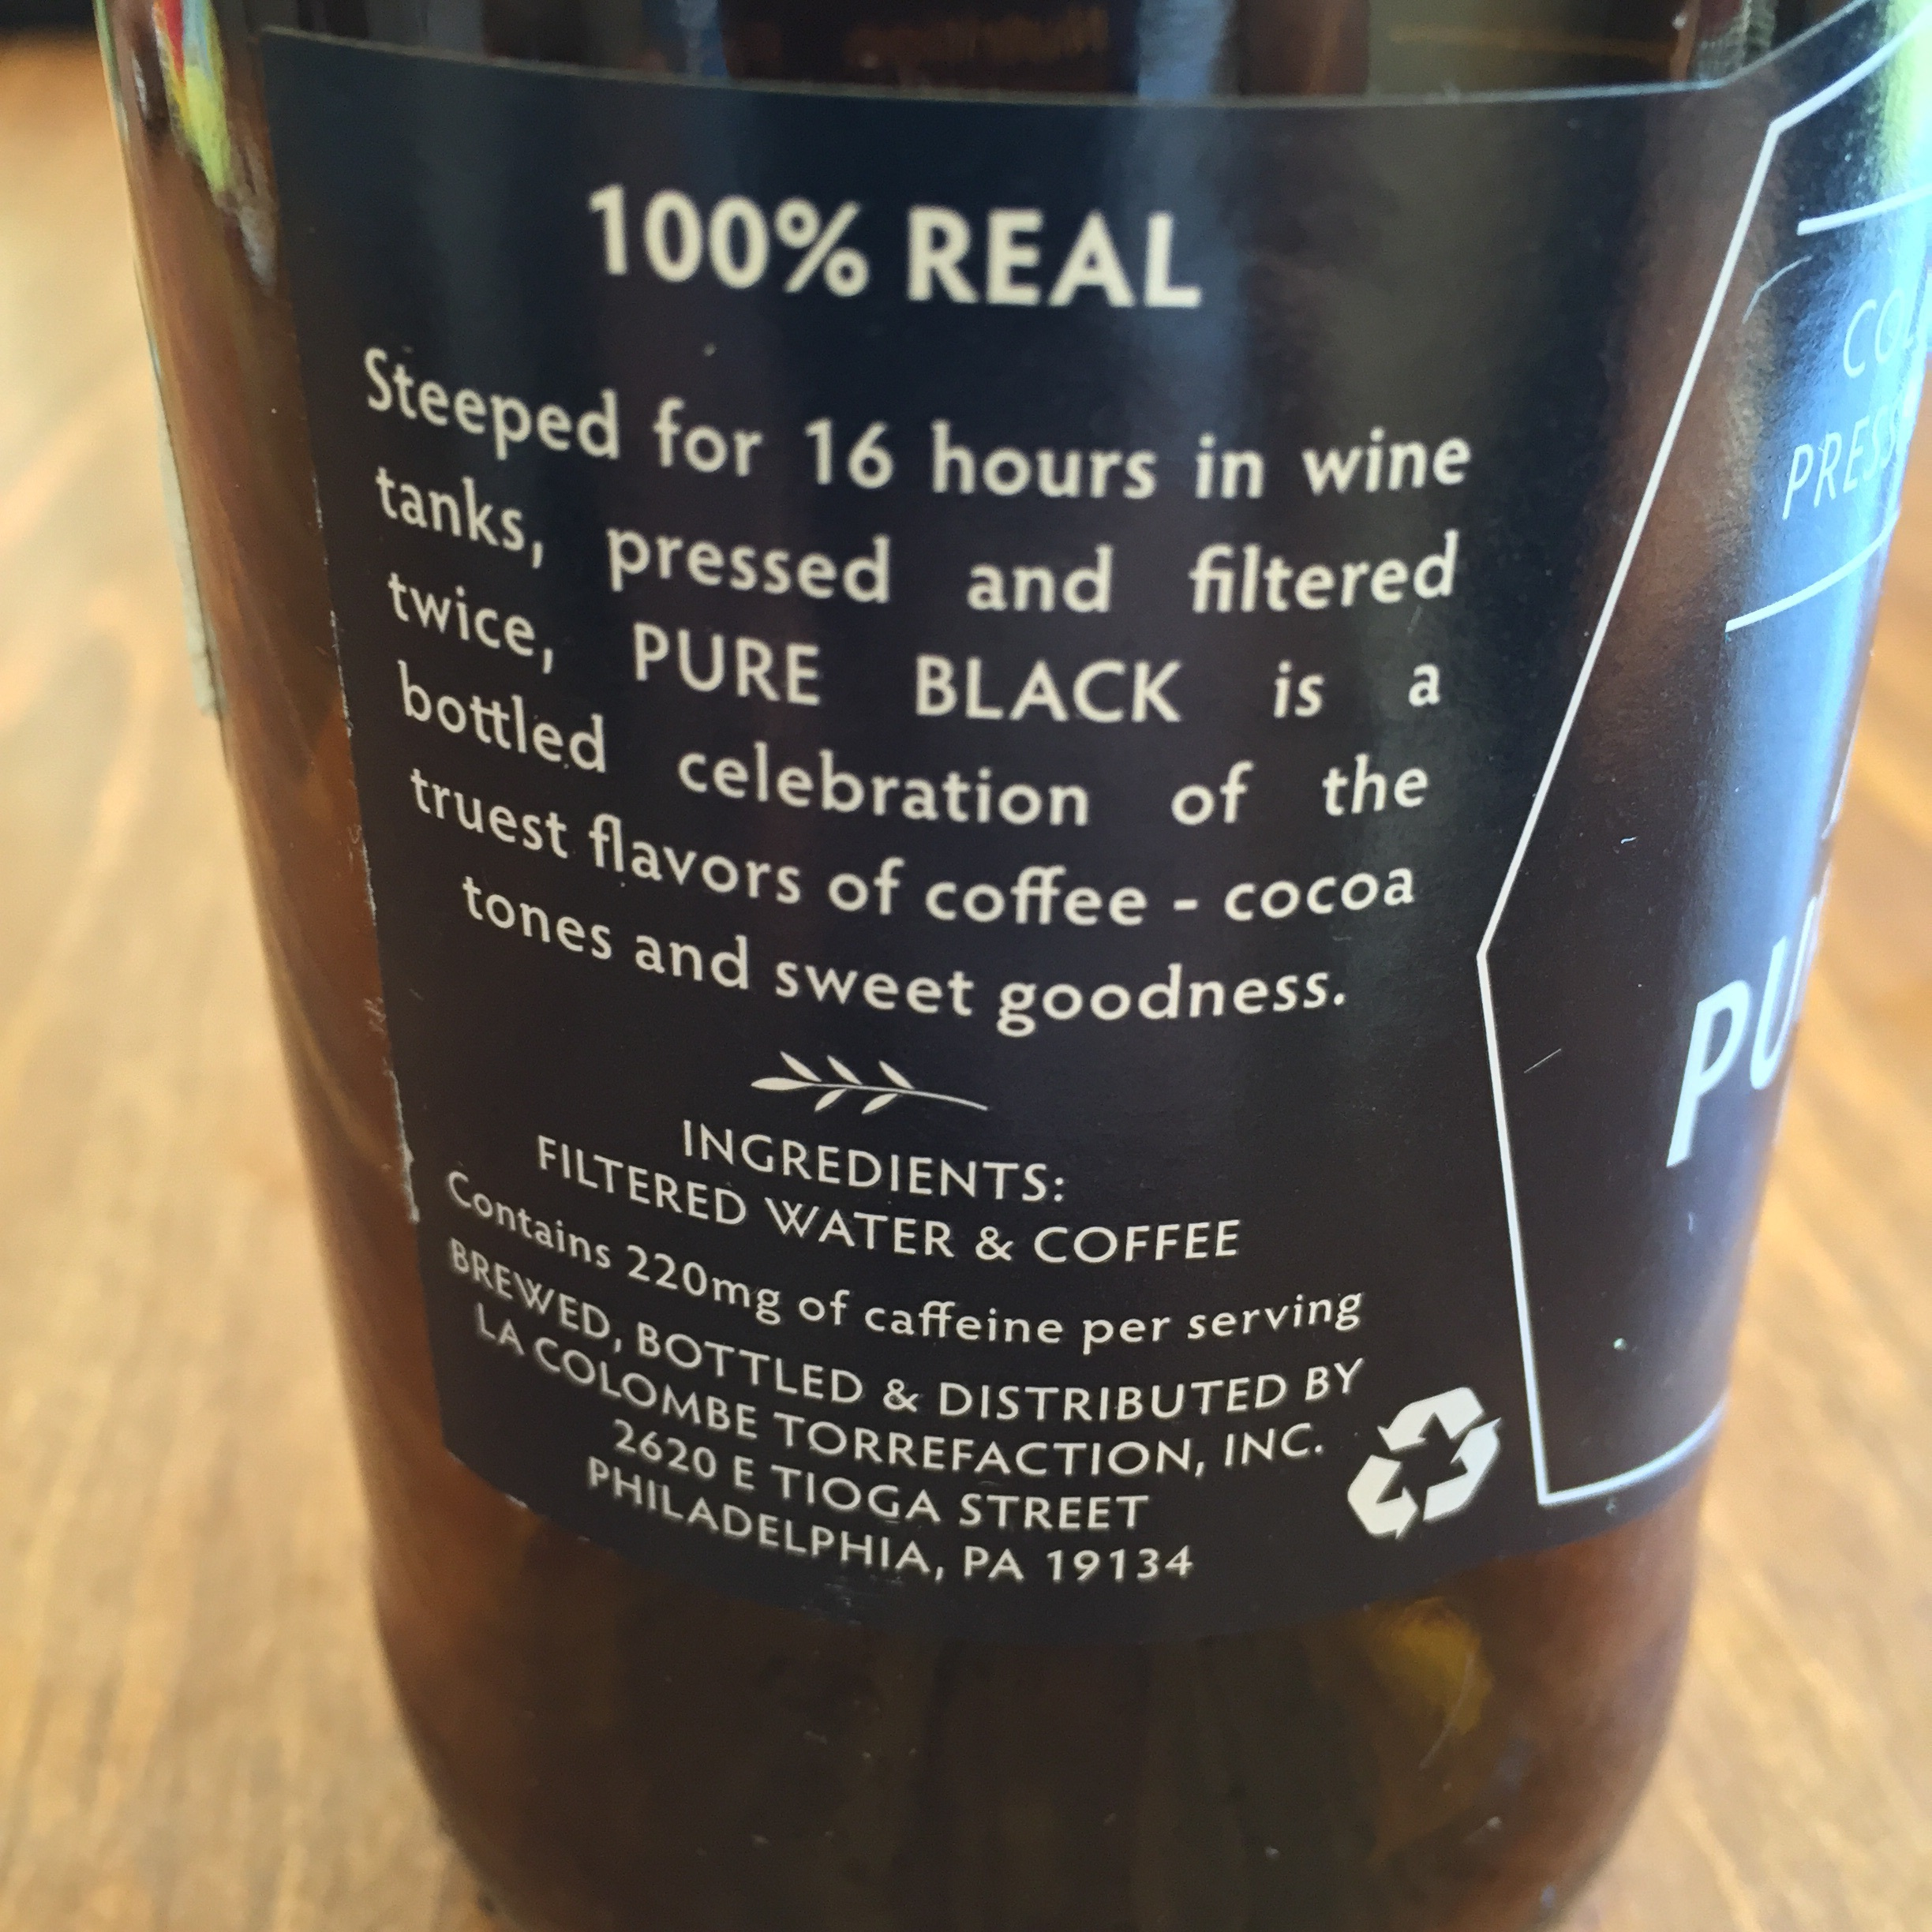 Considering the bottle is strangely 1.5 servings, this bottle contains 330 mg of caffeine total.